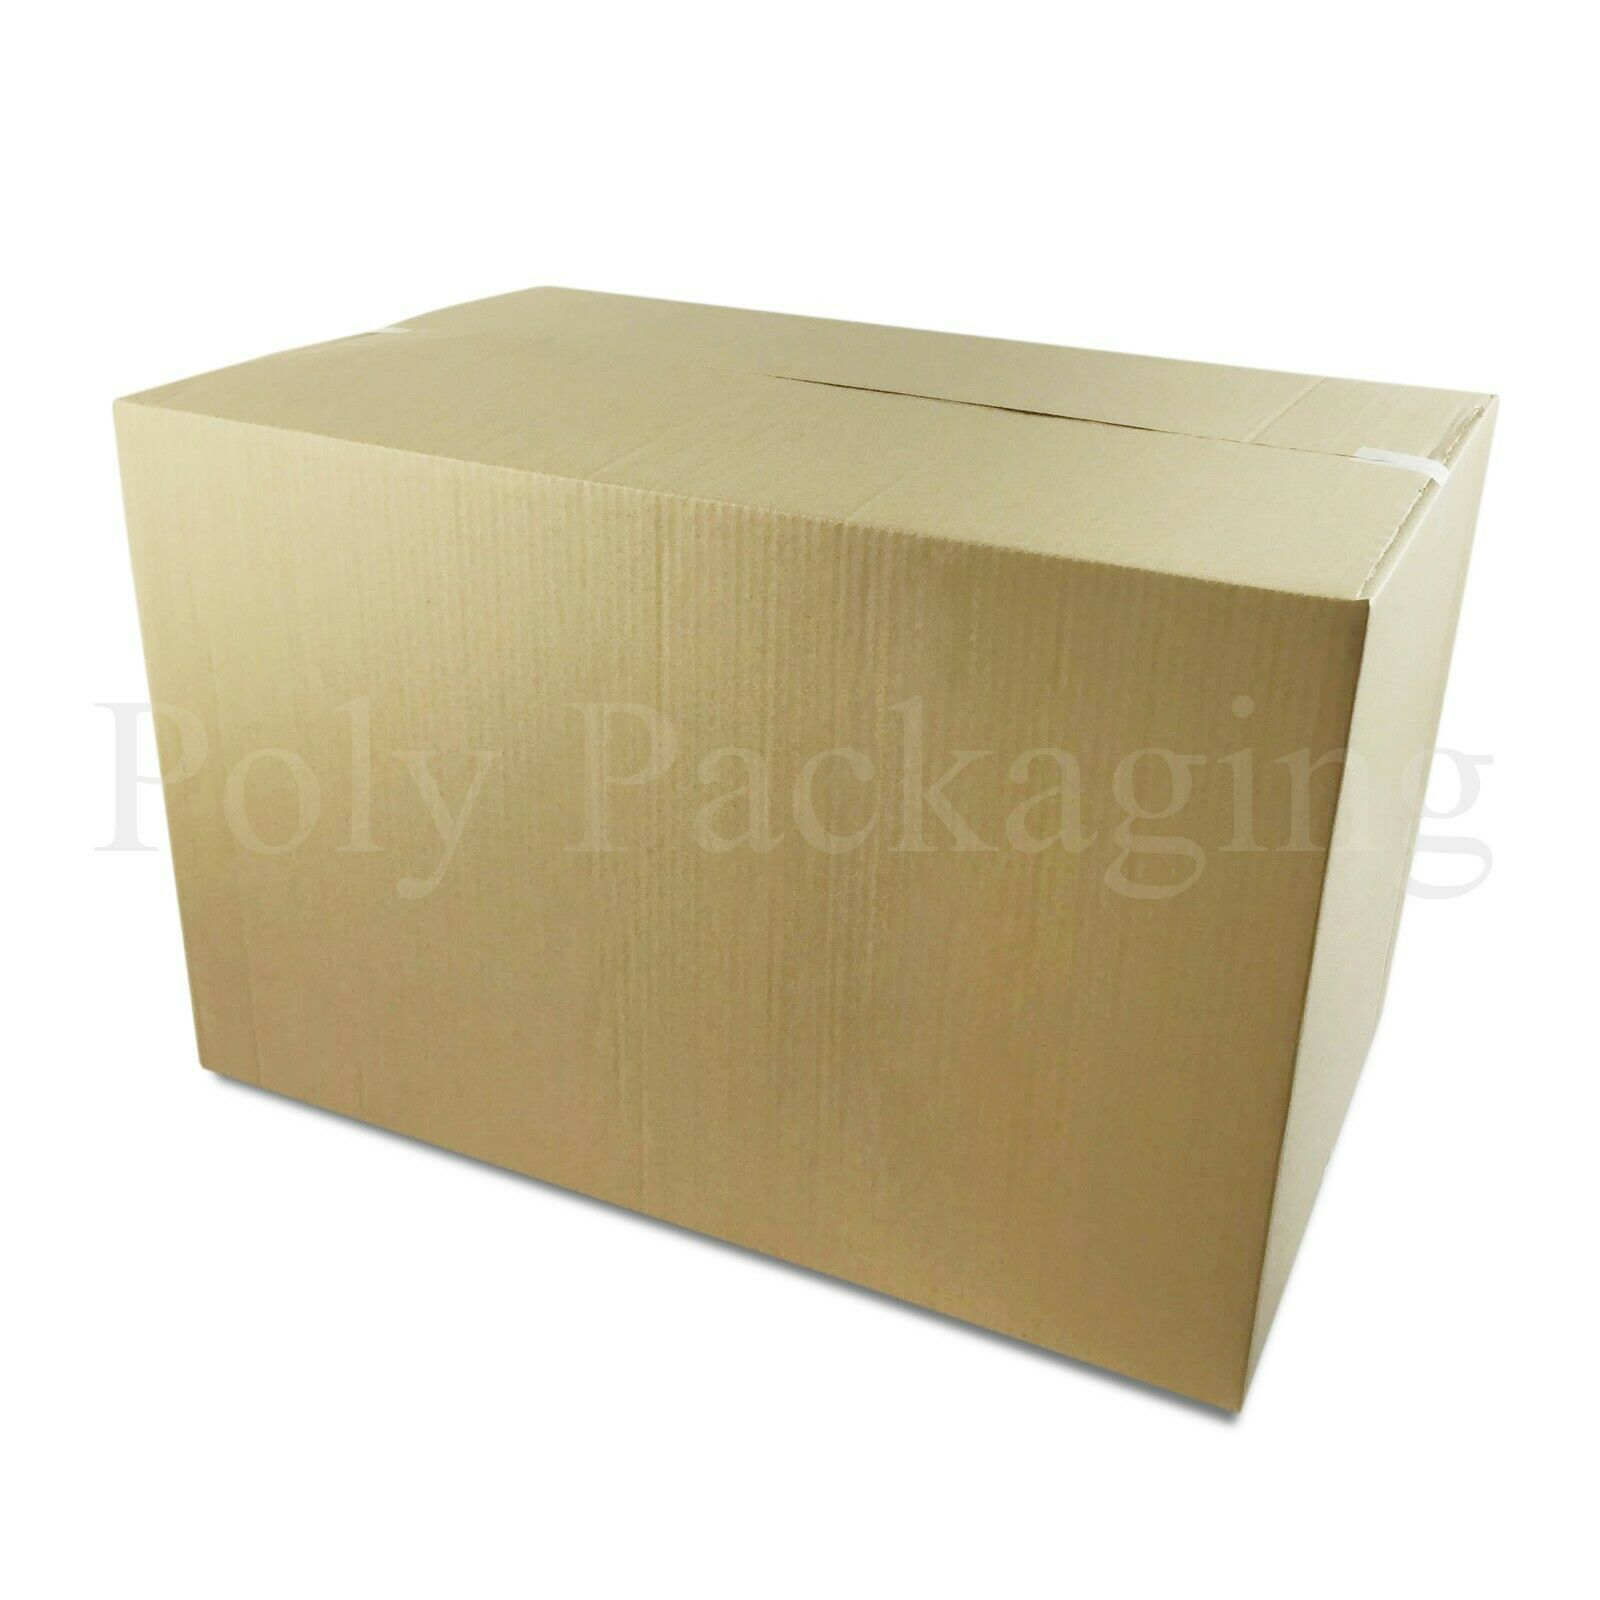 22x14x14  SINGLE WALL Cardboard Boxes ANY QTY(559x356x356mm)